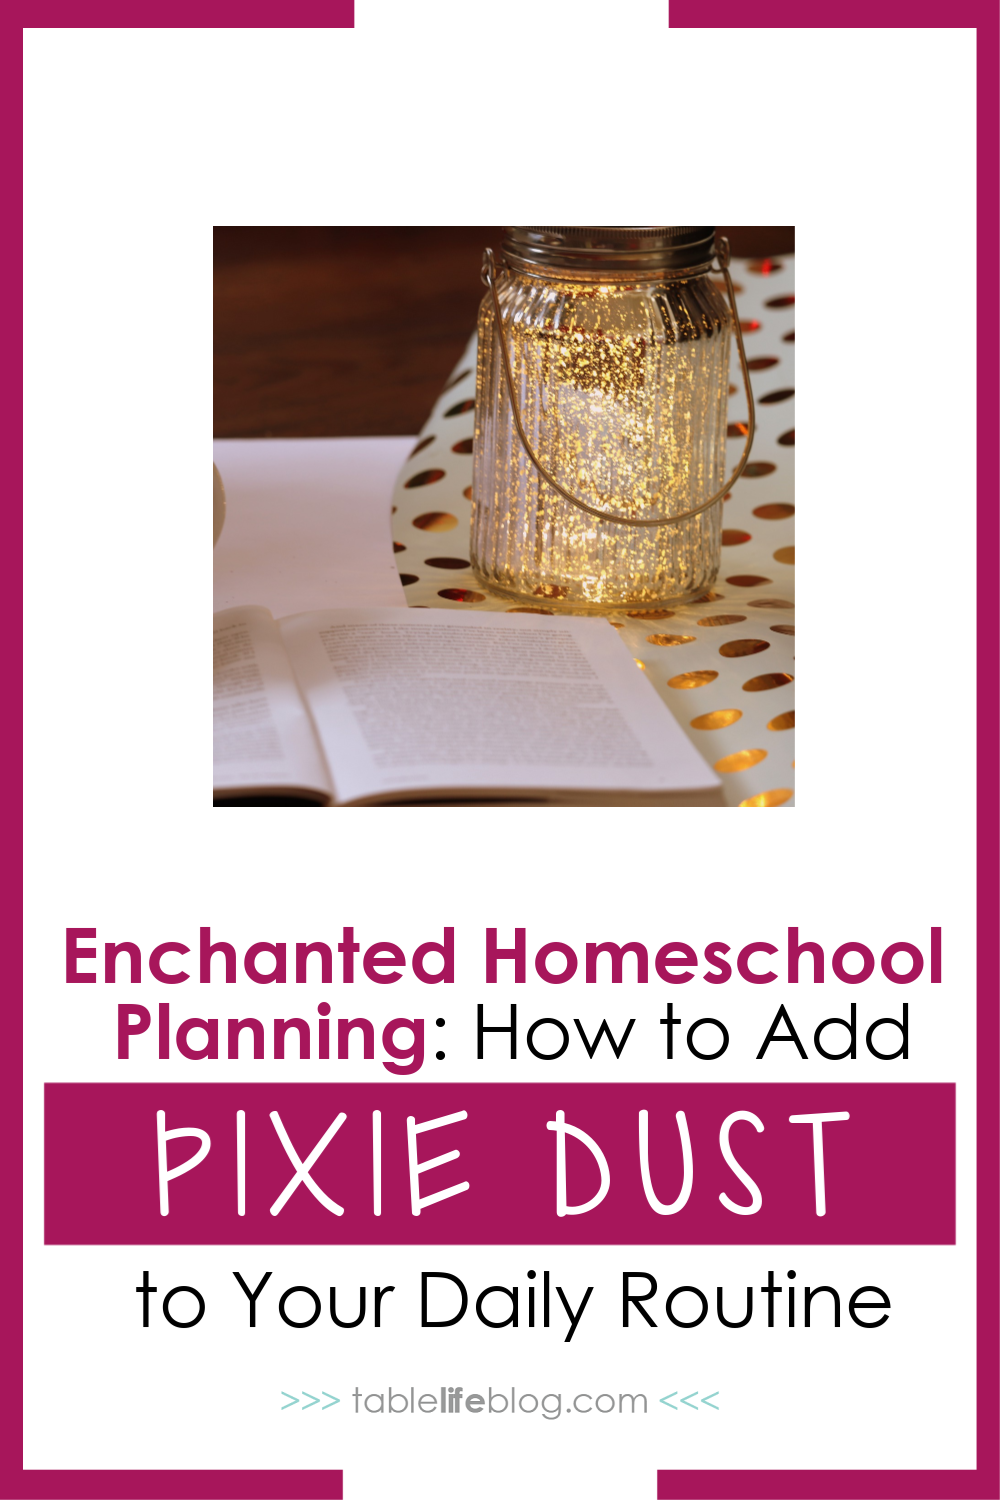 Breathe life and wonder into your homeschooling routine with these enchanted homeschool planning tips.